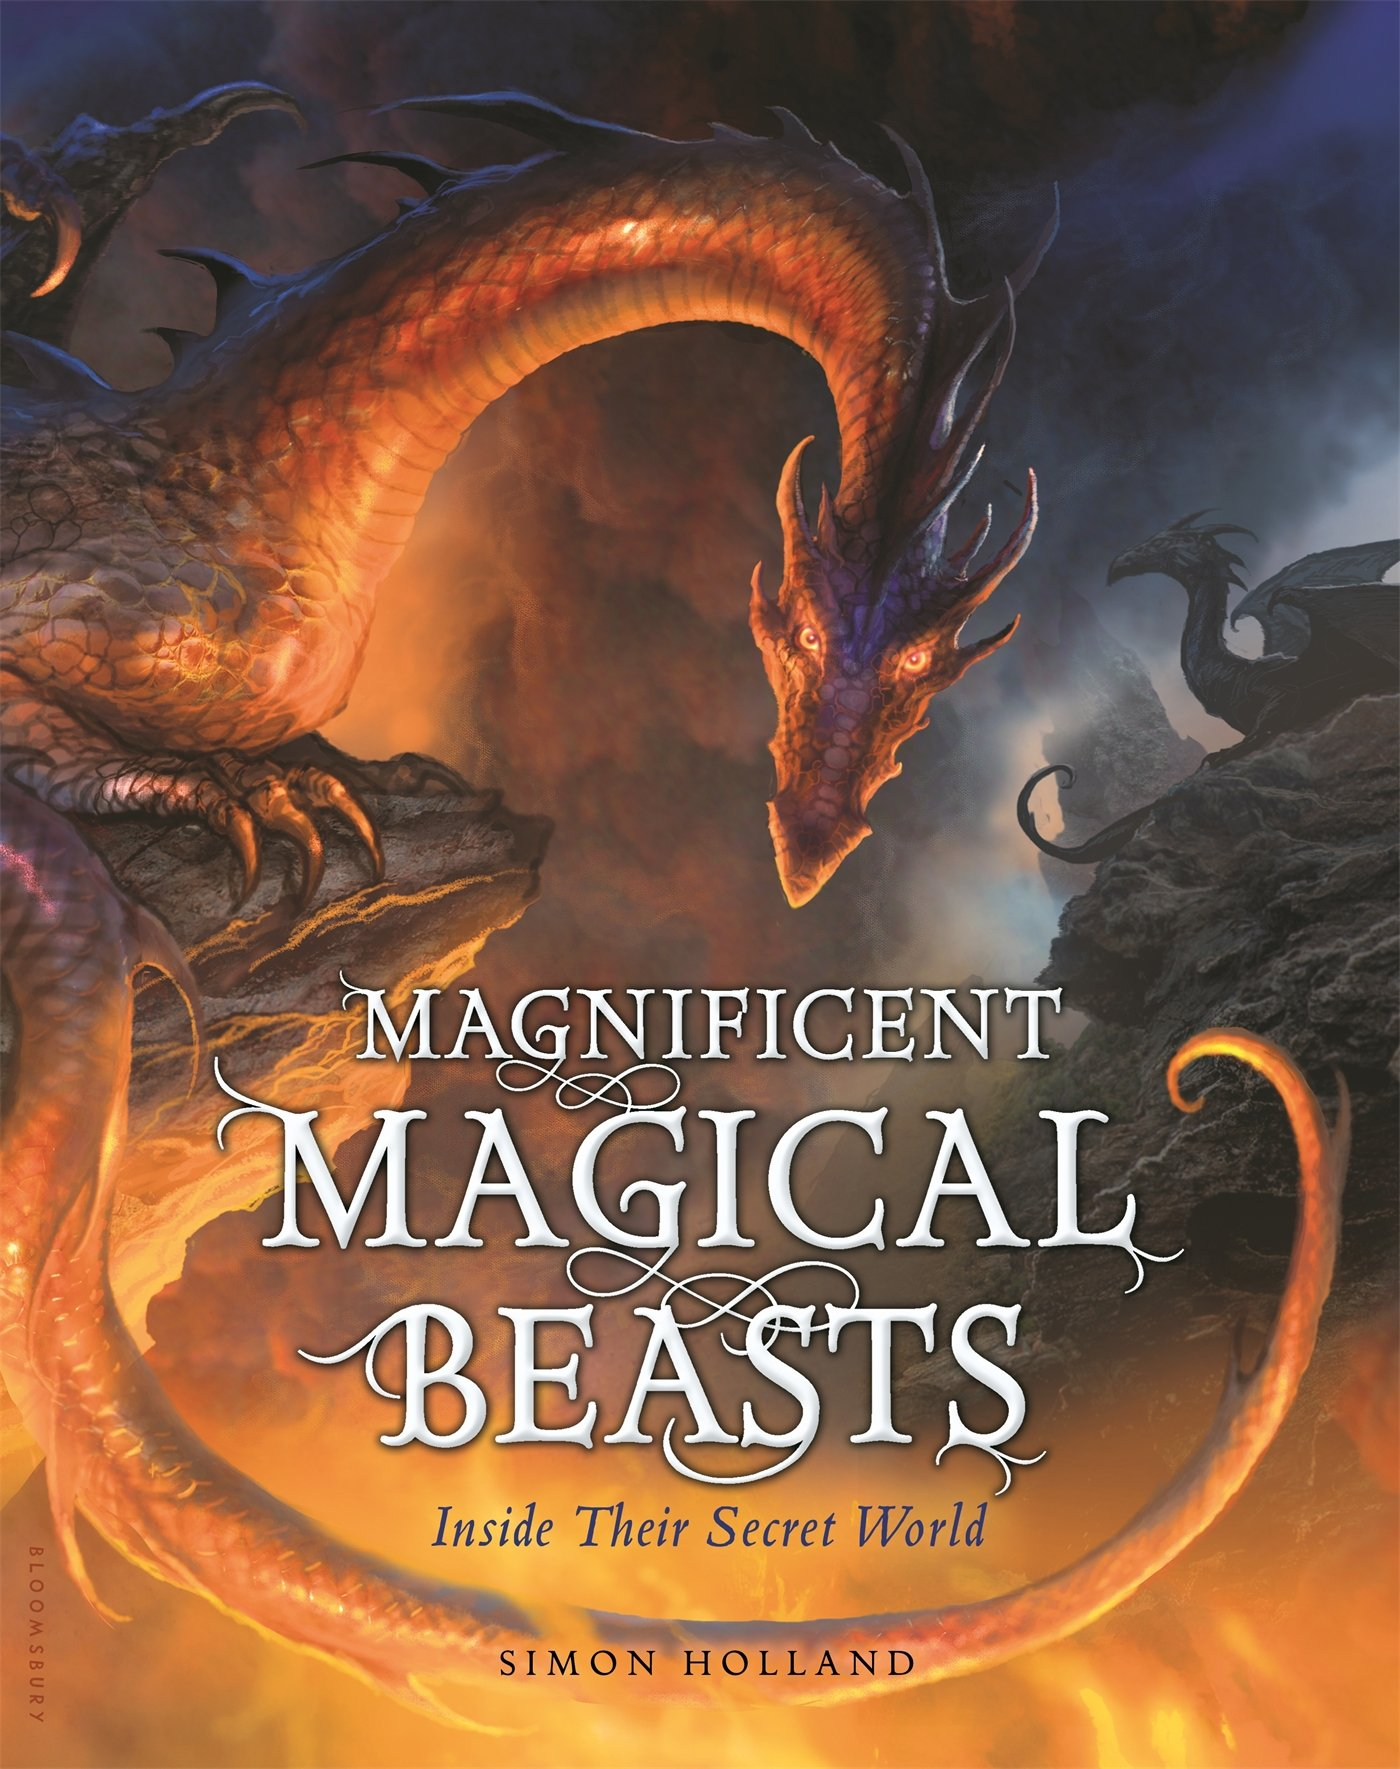 Magnificent Magical Beasts: Inside Their Secret World: Simon Holland ...